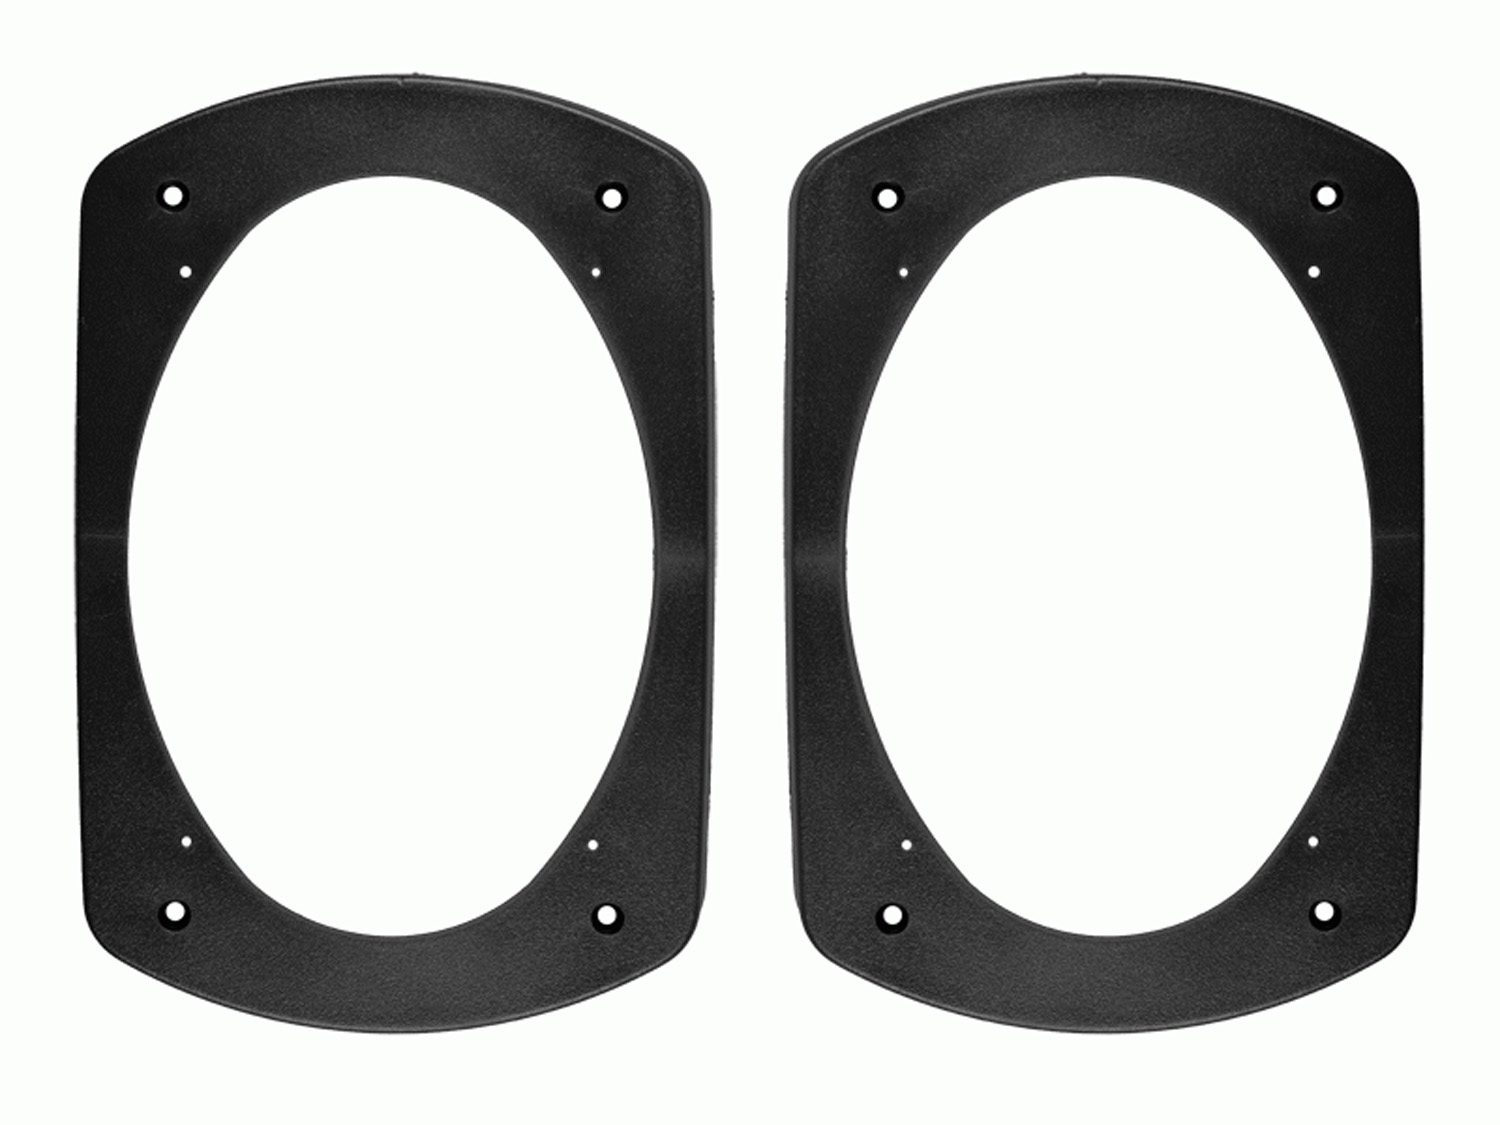 "826900 - Metra Pair Of Universal 1-1/2"" Speaker Spacers"